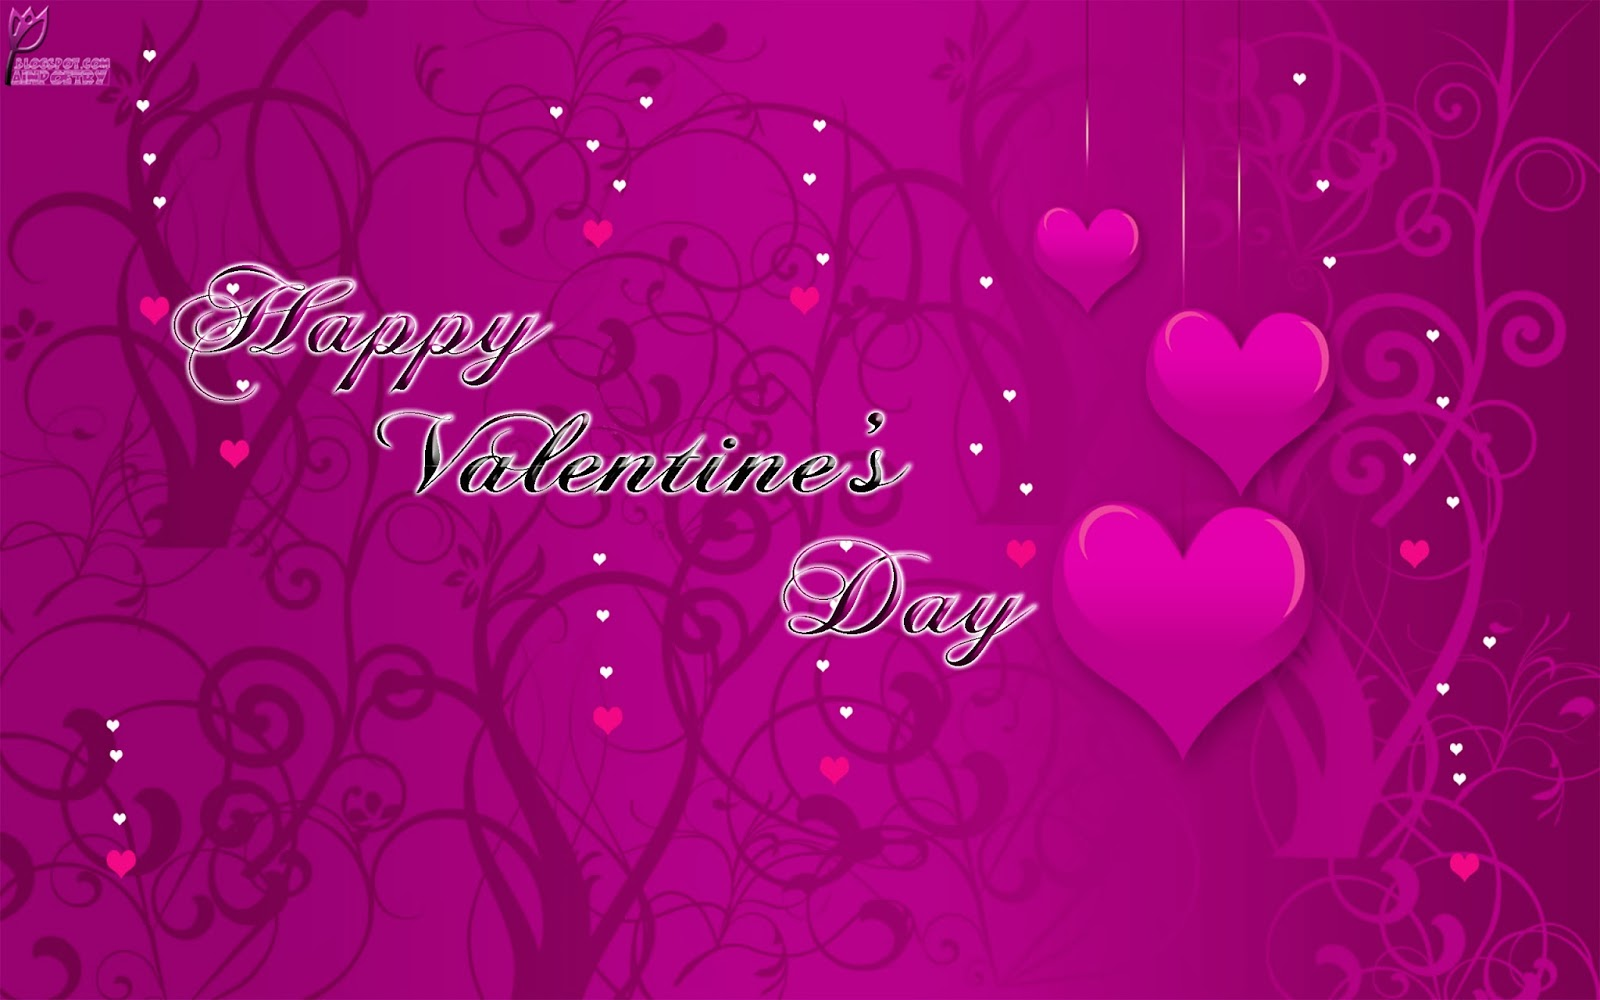 Happy-Valentines-Day-Wishes-Wallpaper-Image-HD-Wide